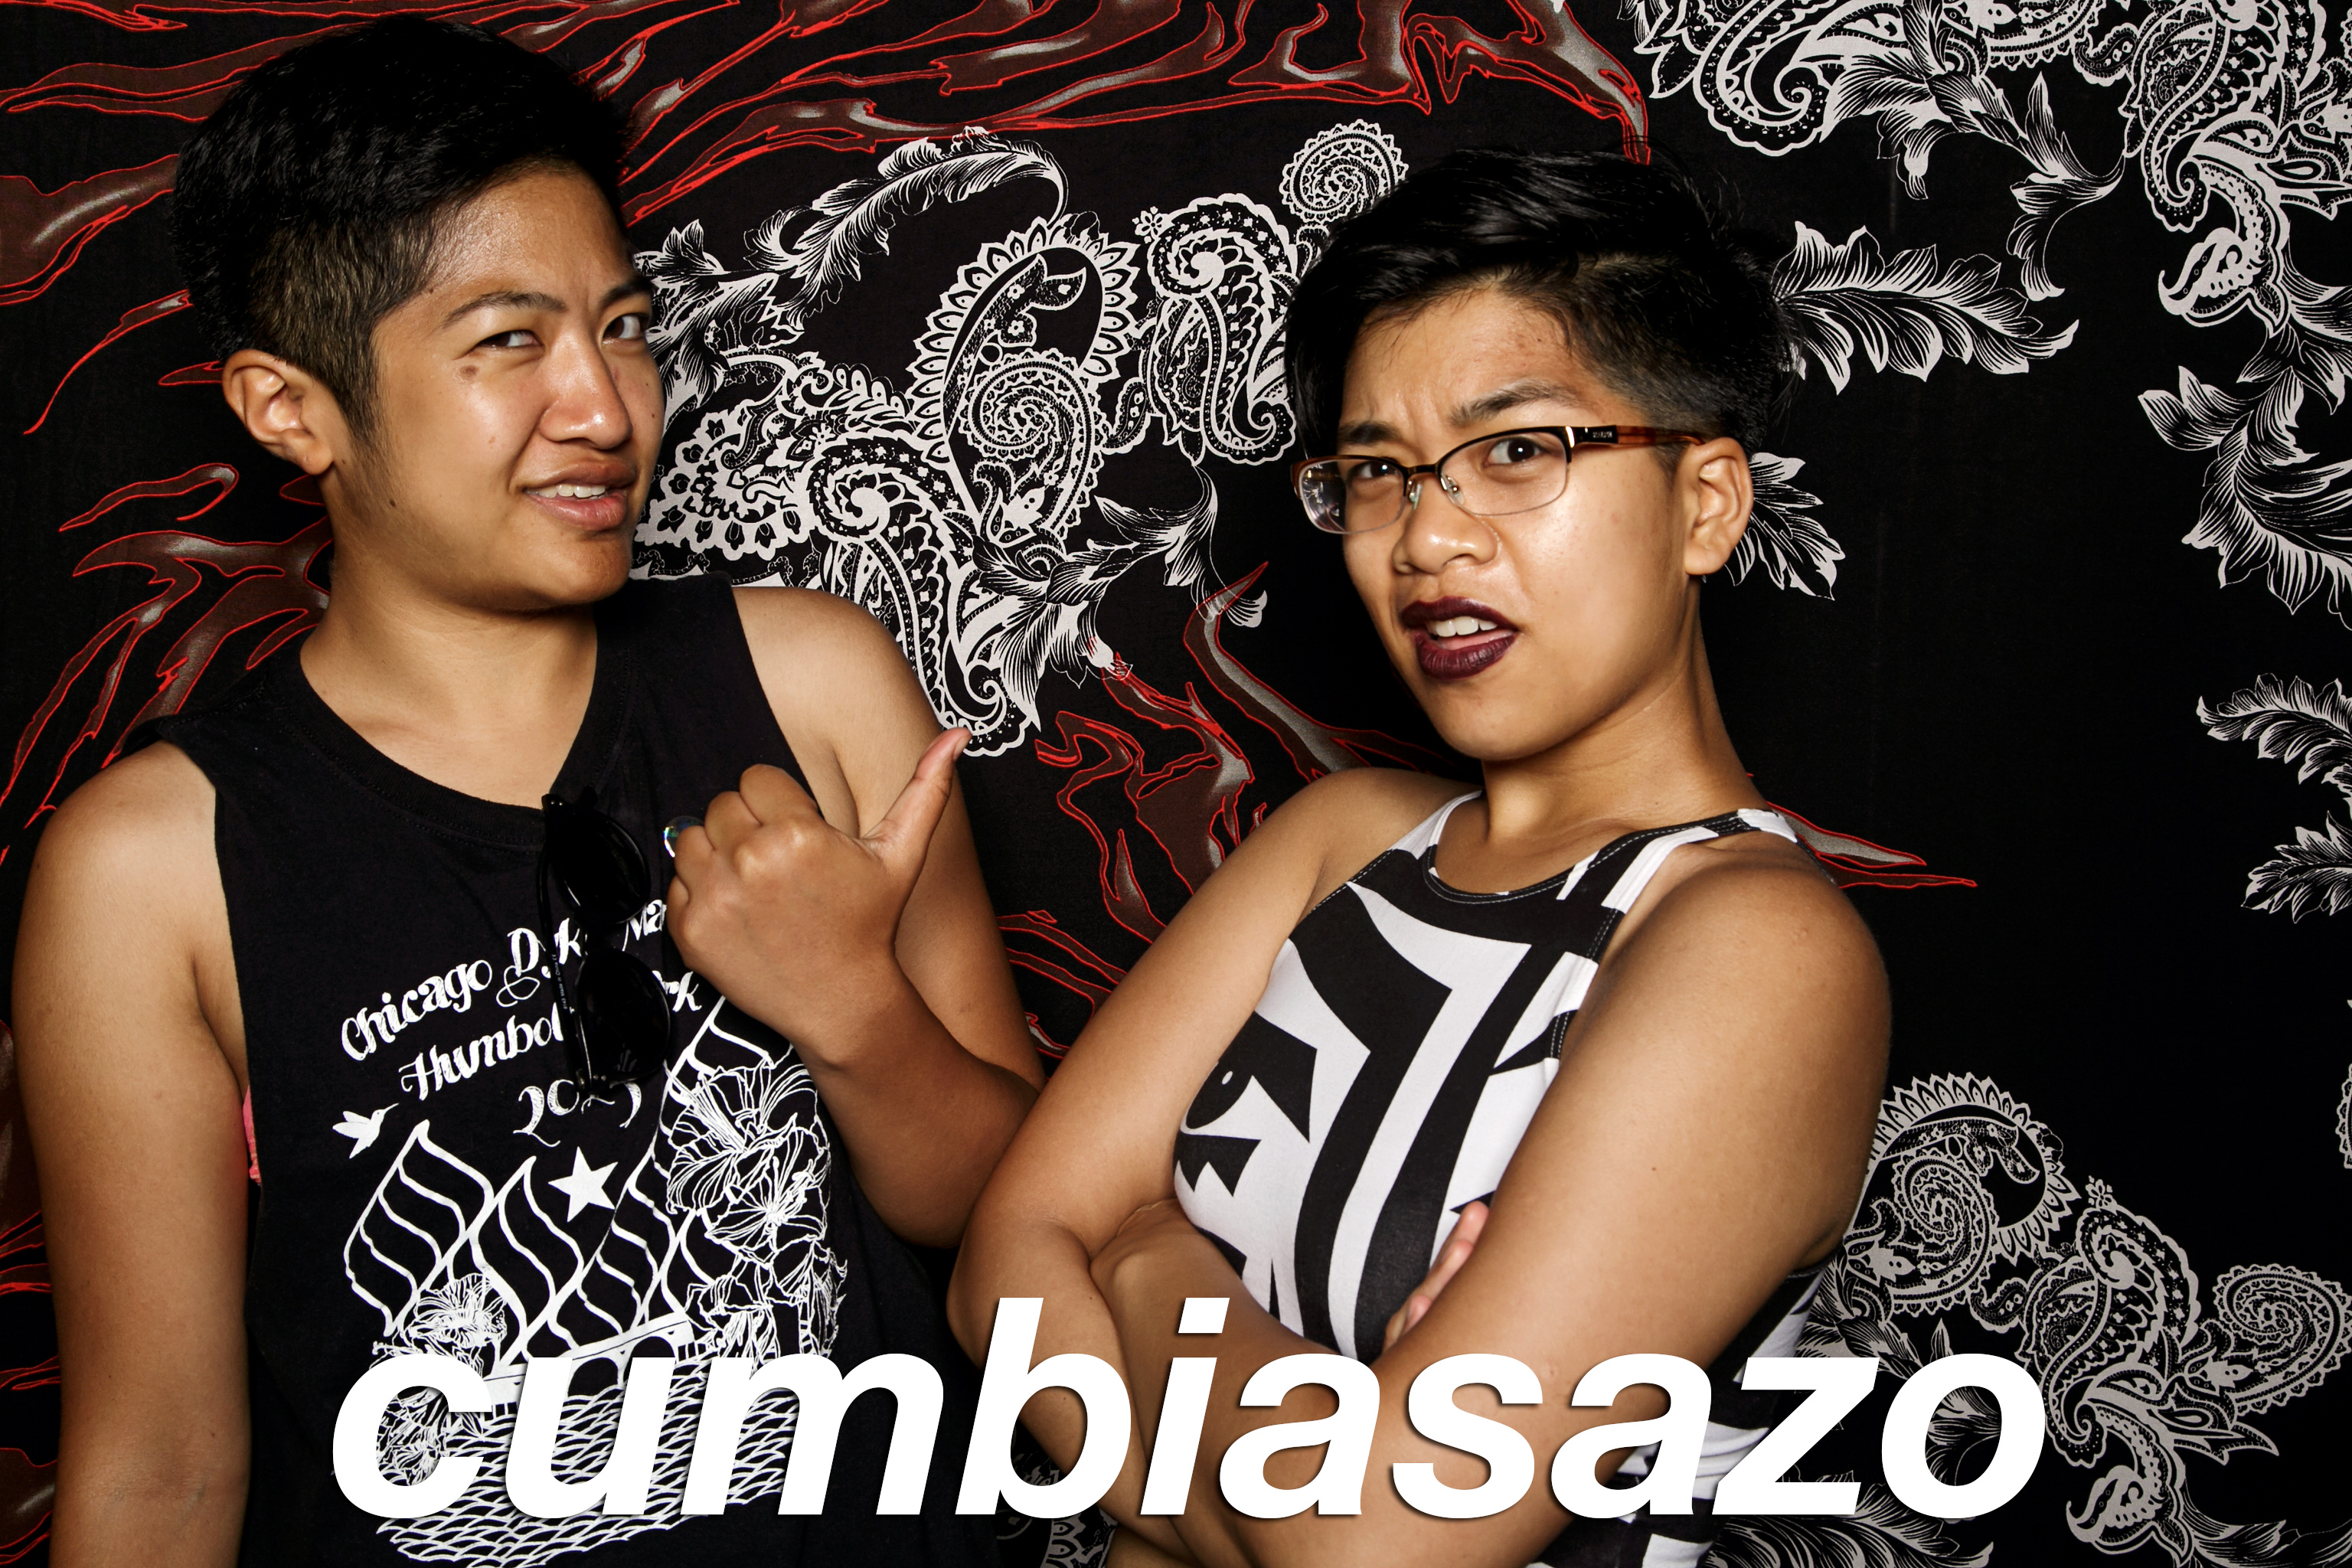 portrait booth photos from cumbiasazo, june 2016